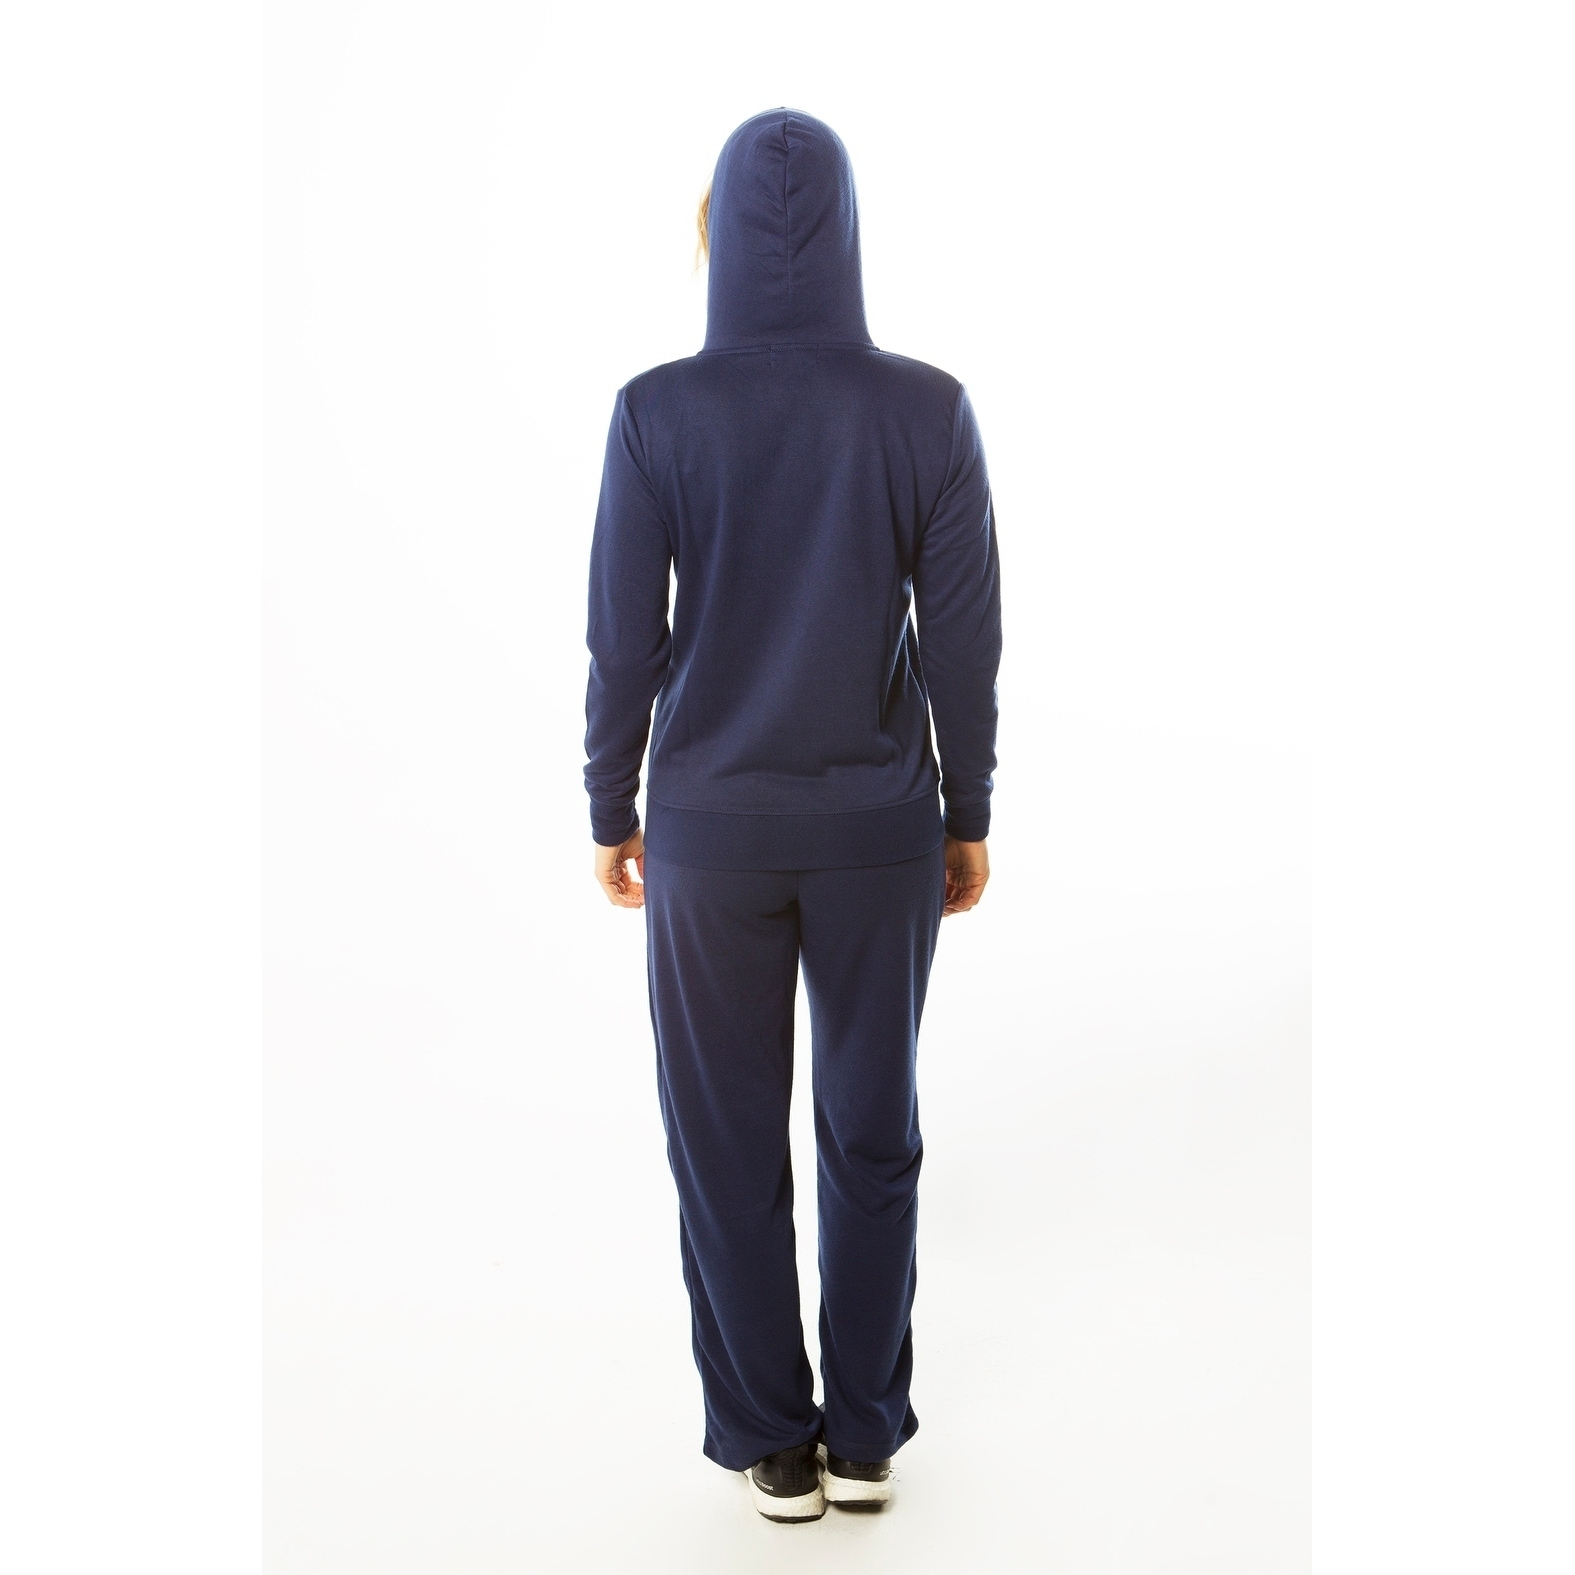 95192234a92ce Shop Ladies French Terry Sets - Free Shipping On Orders Over $45 -  Overstock - 21208162